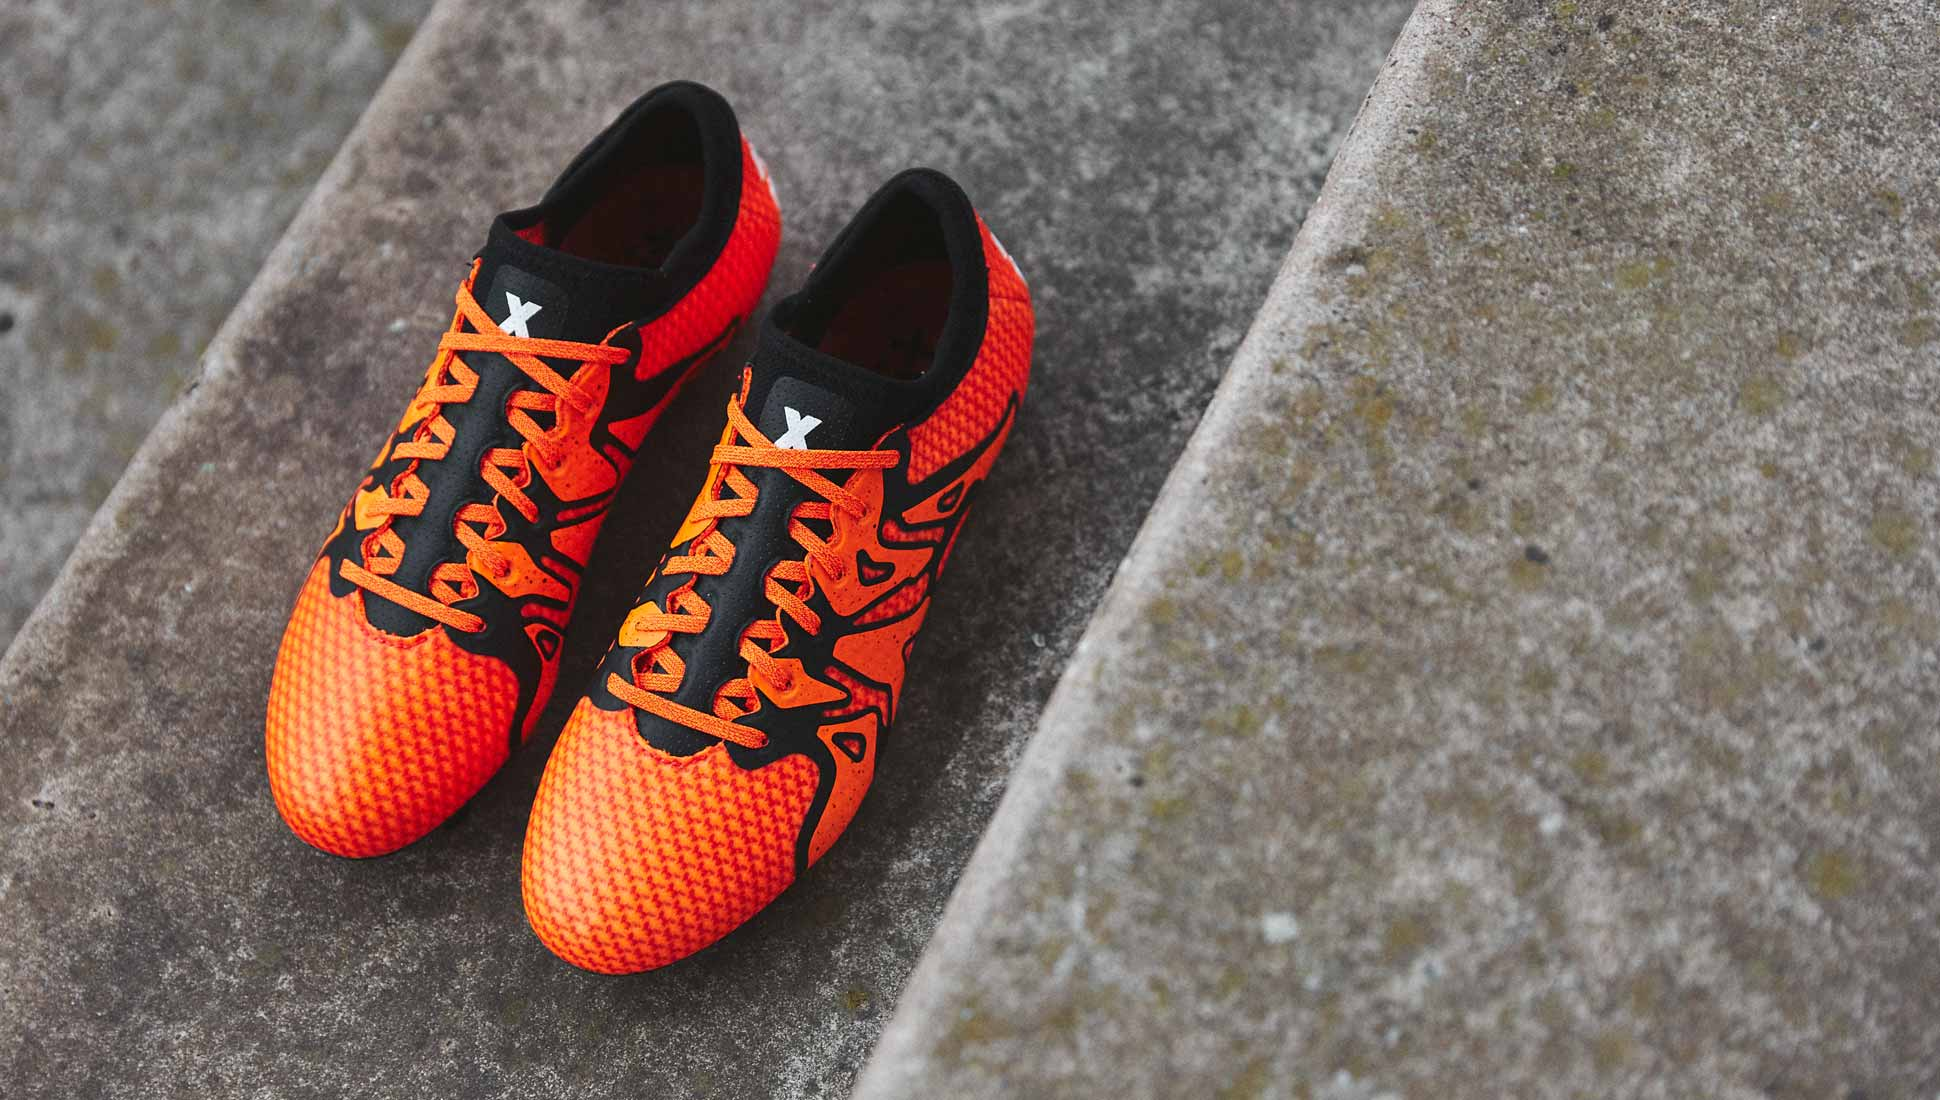 e9c8732a0748 Laced Up  adidas X15+ Primeknit Review - SoccerBible.